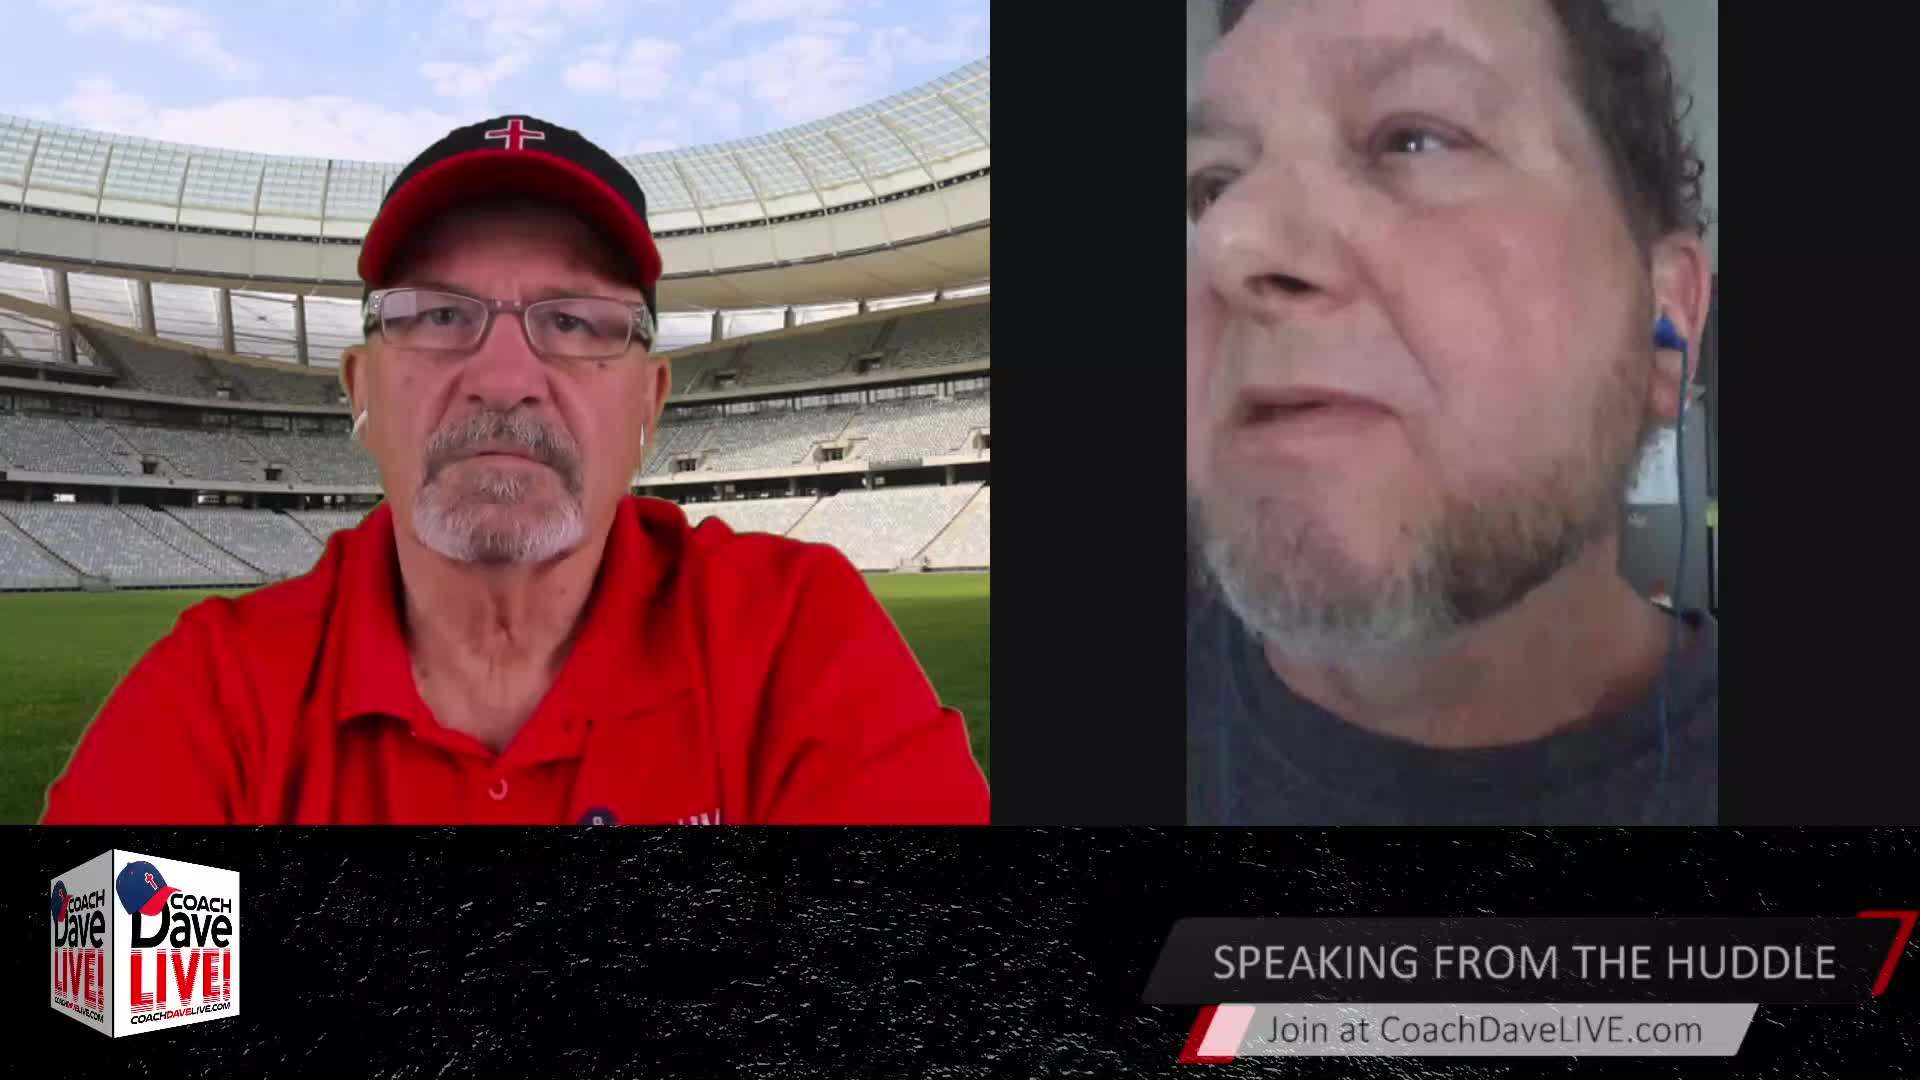 Coach Dave LIVE | 4-16-2021 | FLEA FLICKER FRIDAY: DOC MARQUIS AND MORE COVID LIES - AUDIO ONLY